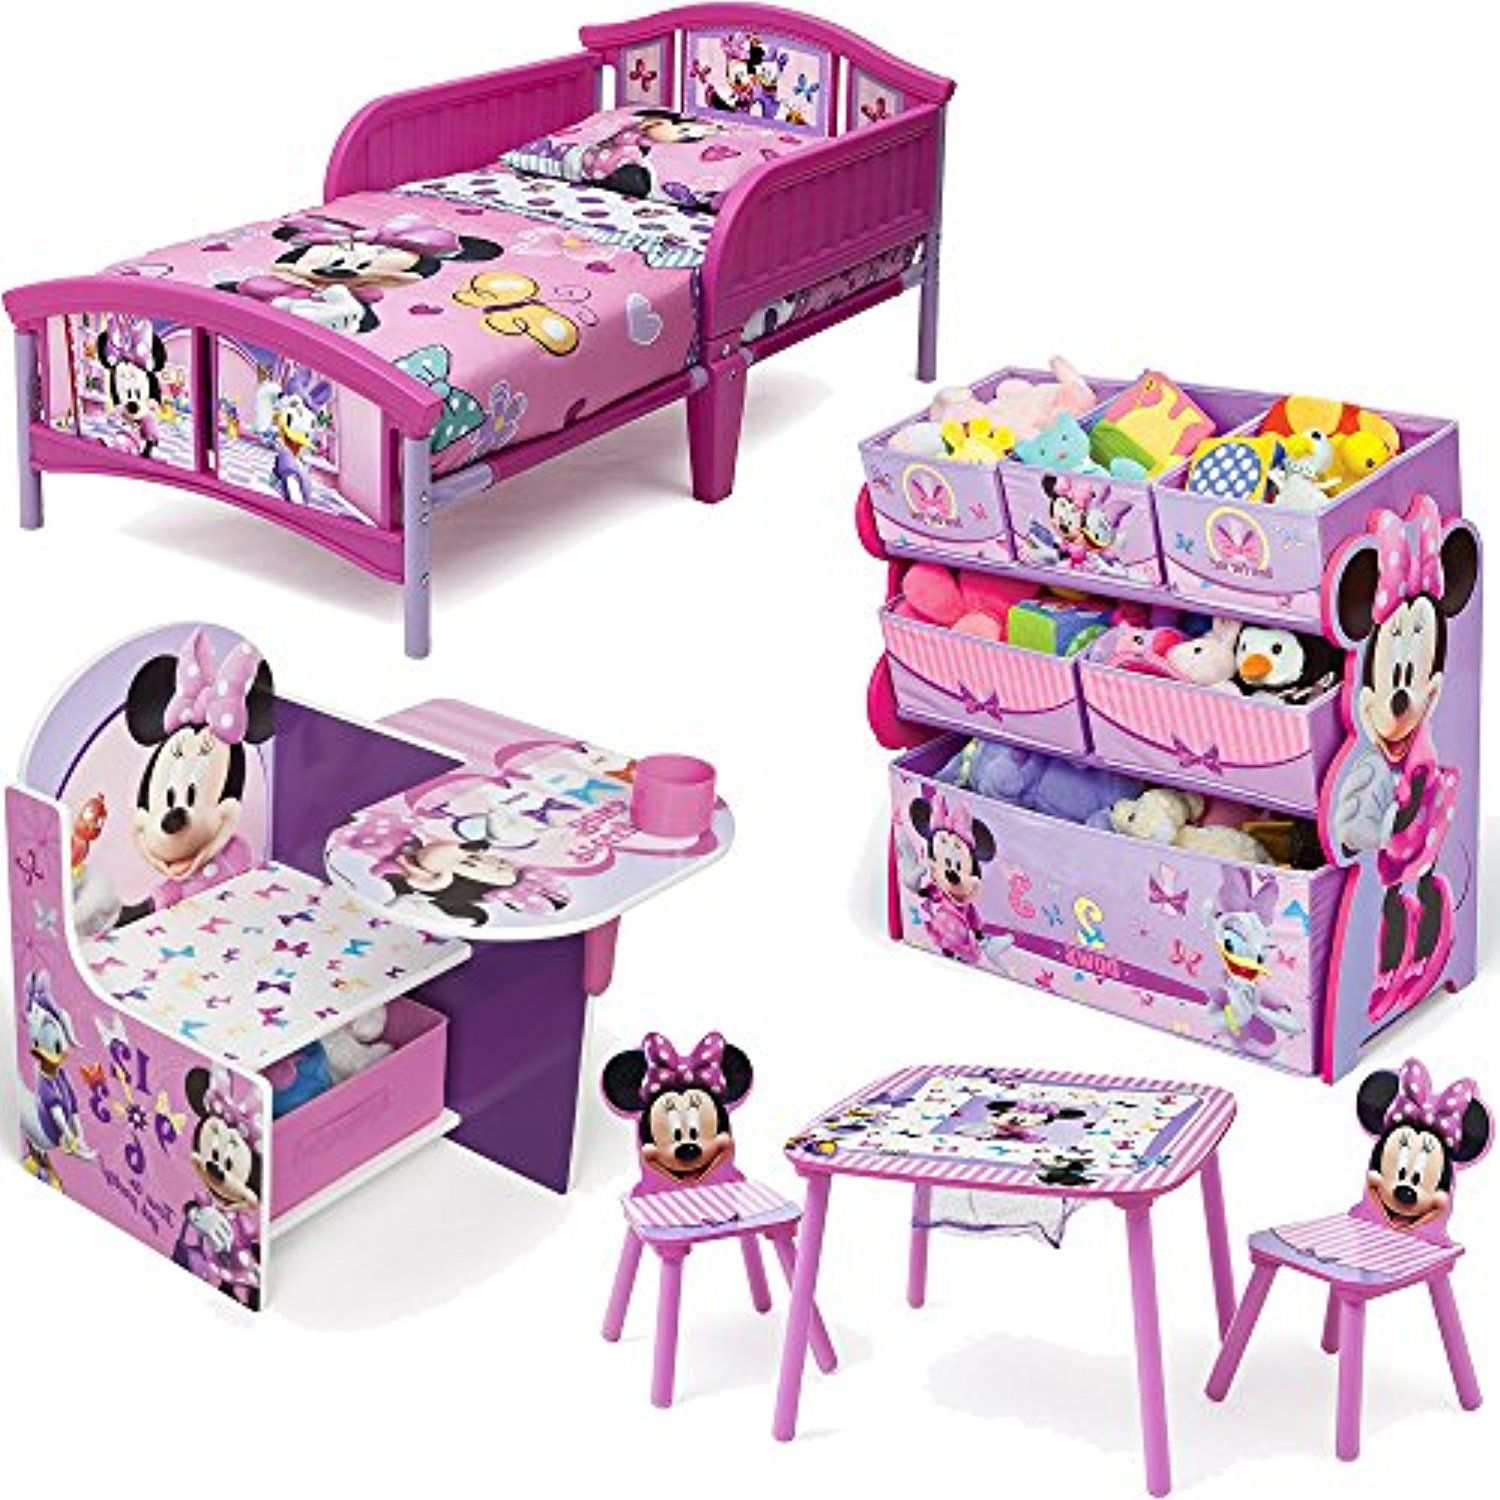 Strange Disney Delta Children Minnie Mouse 6 Piece Furniture Set Pdpeps Interior Chair Design Pdpepsorg